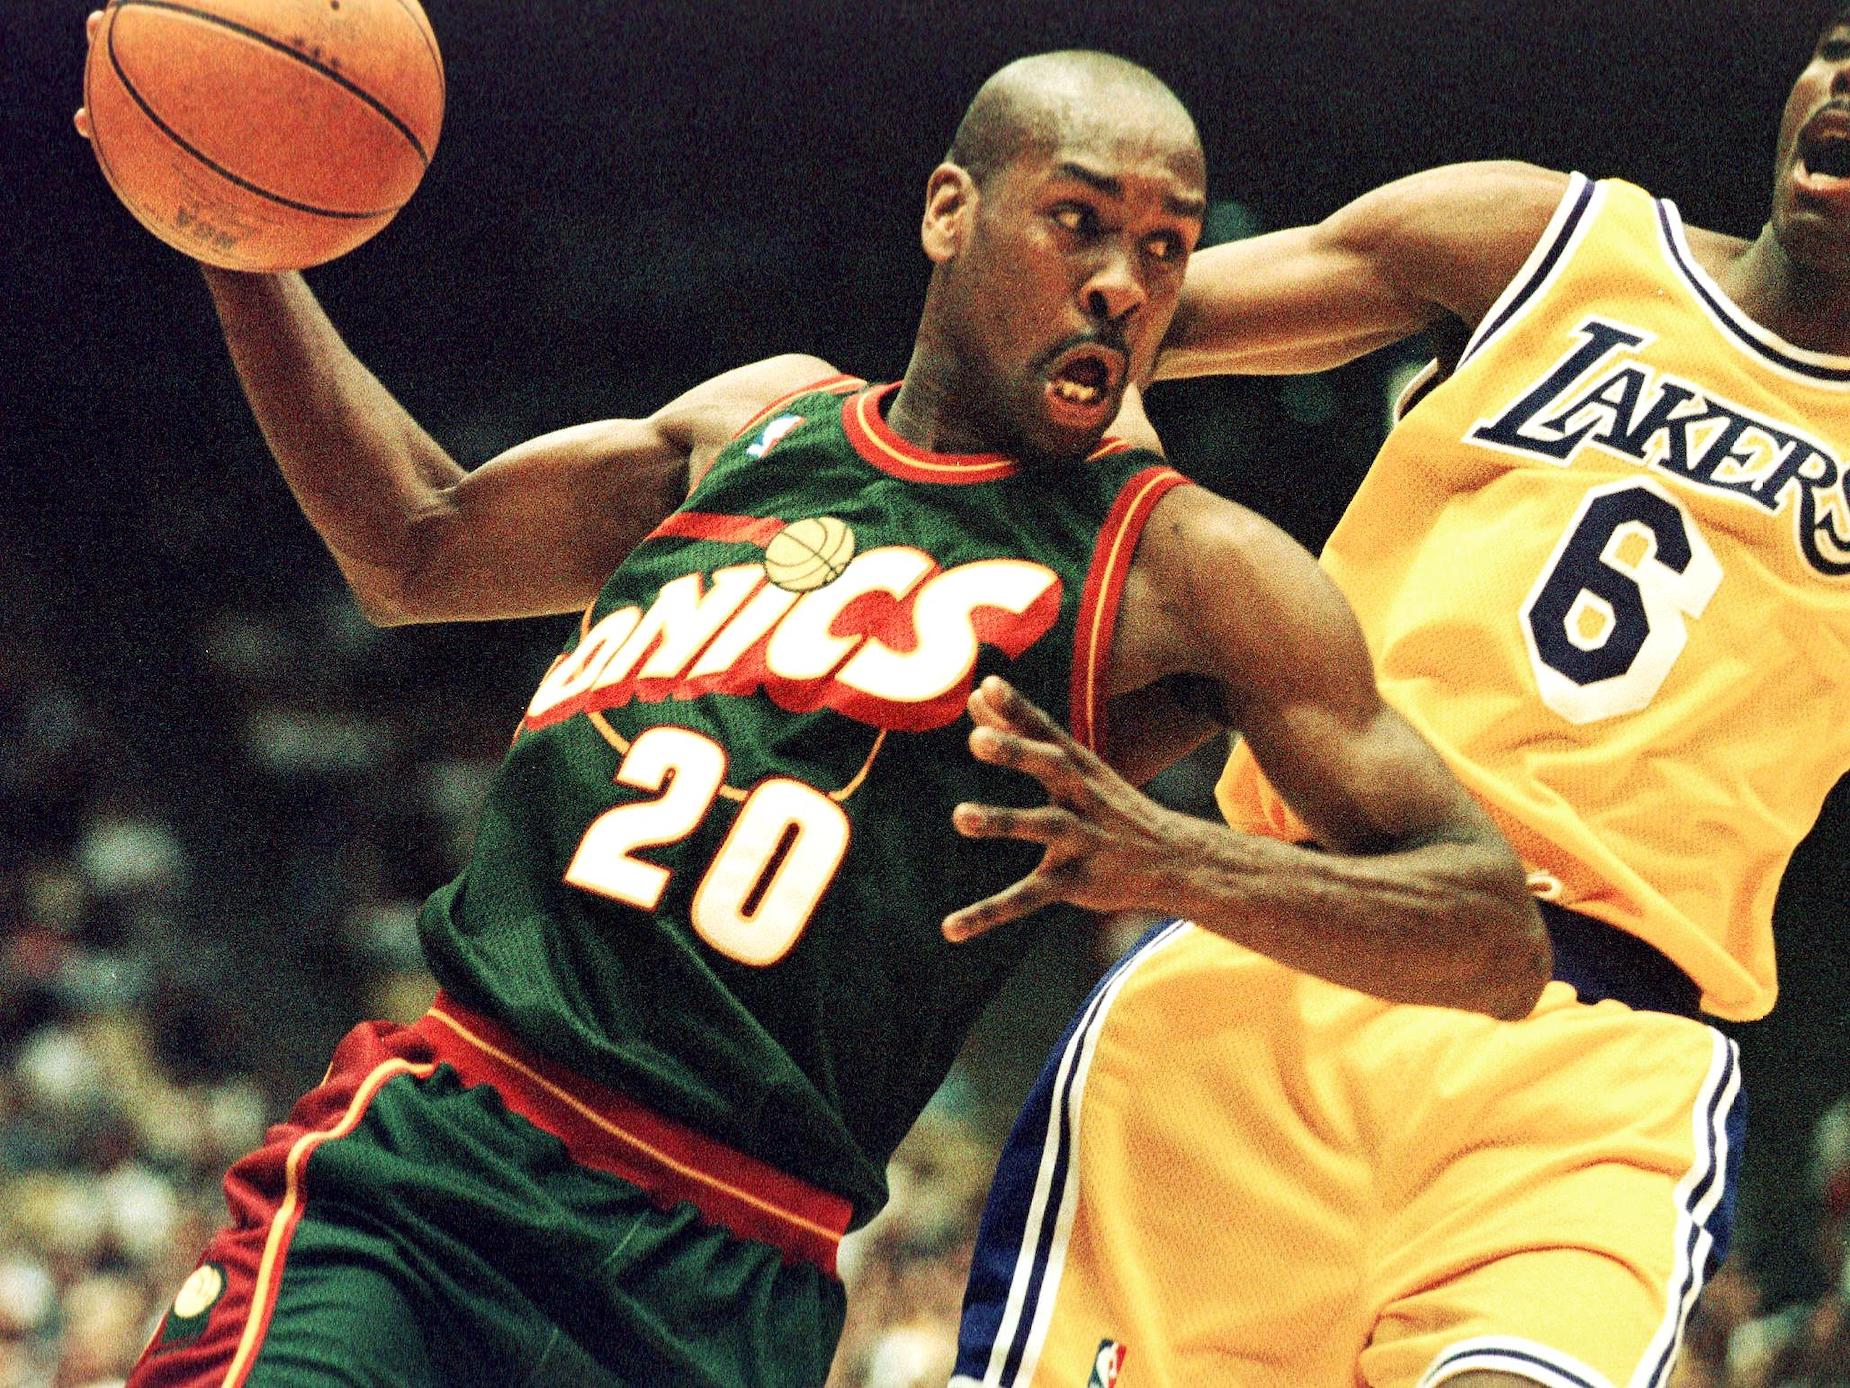 Gary Payton dribbles the ball as a member of the Seattle SuperSonics.